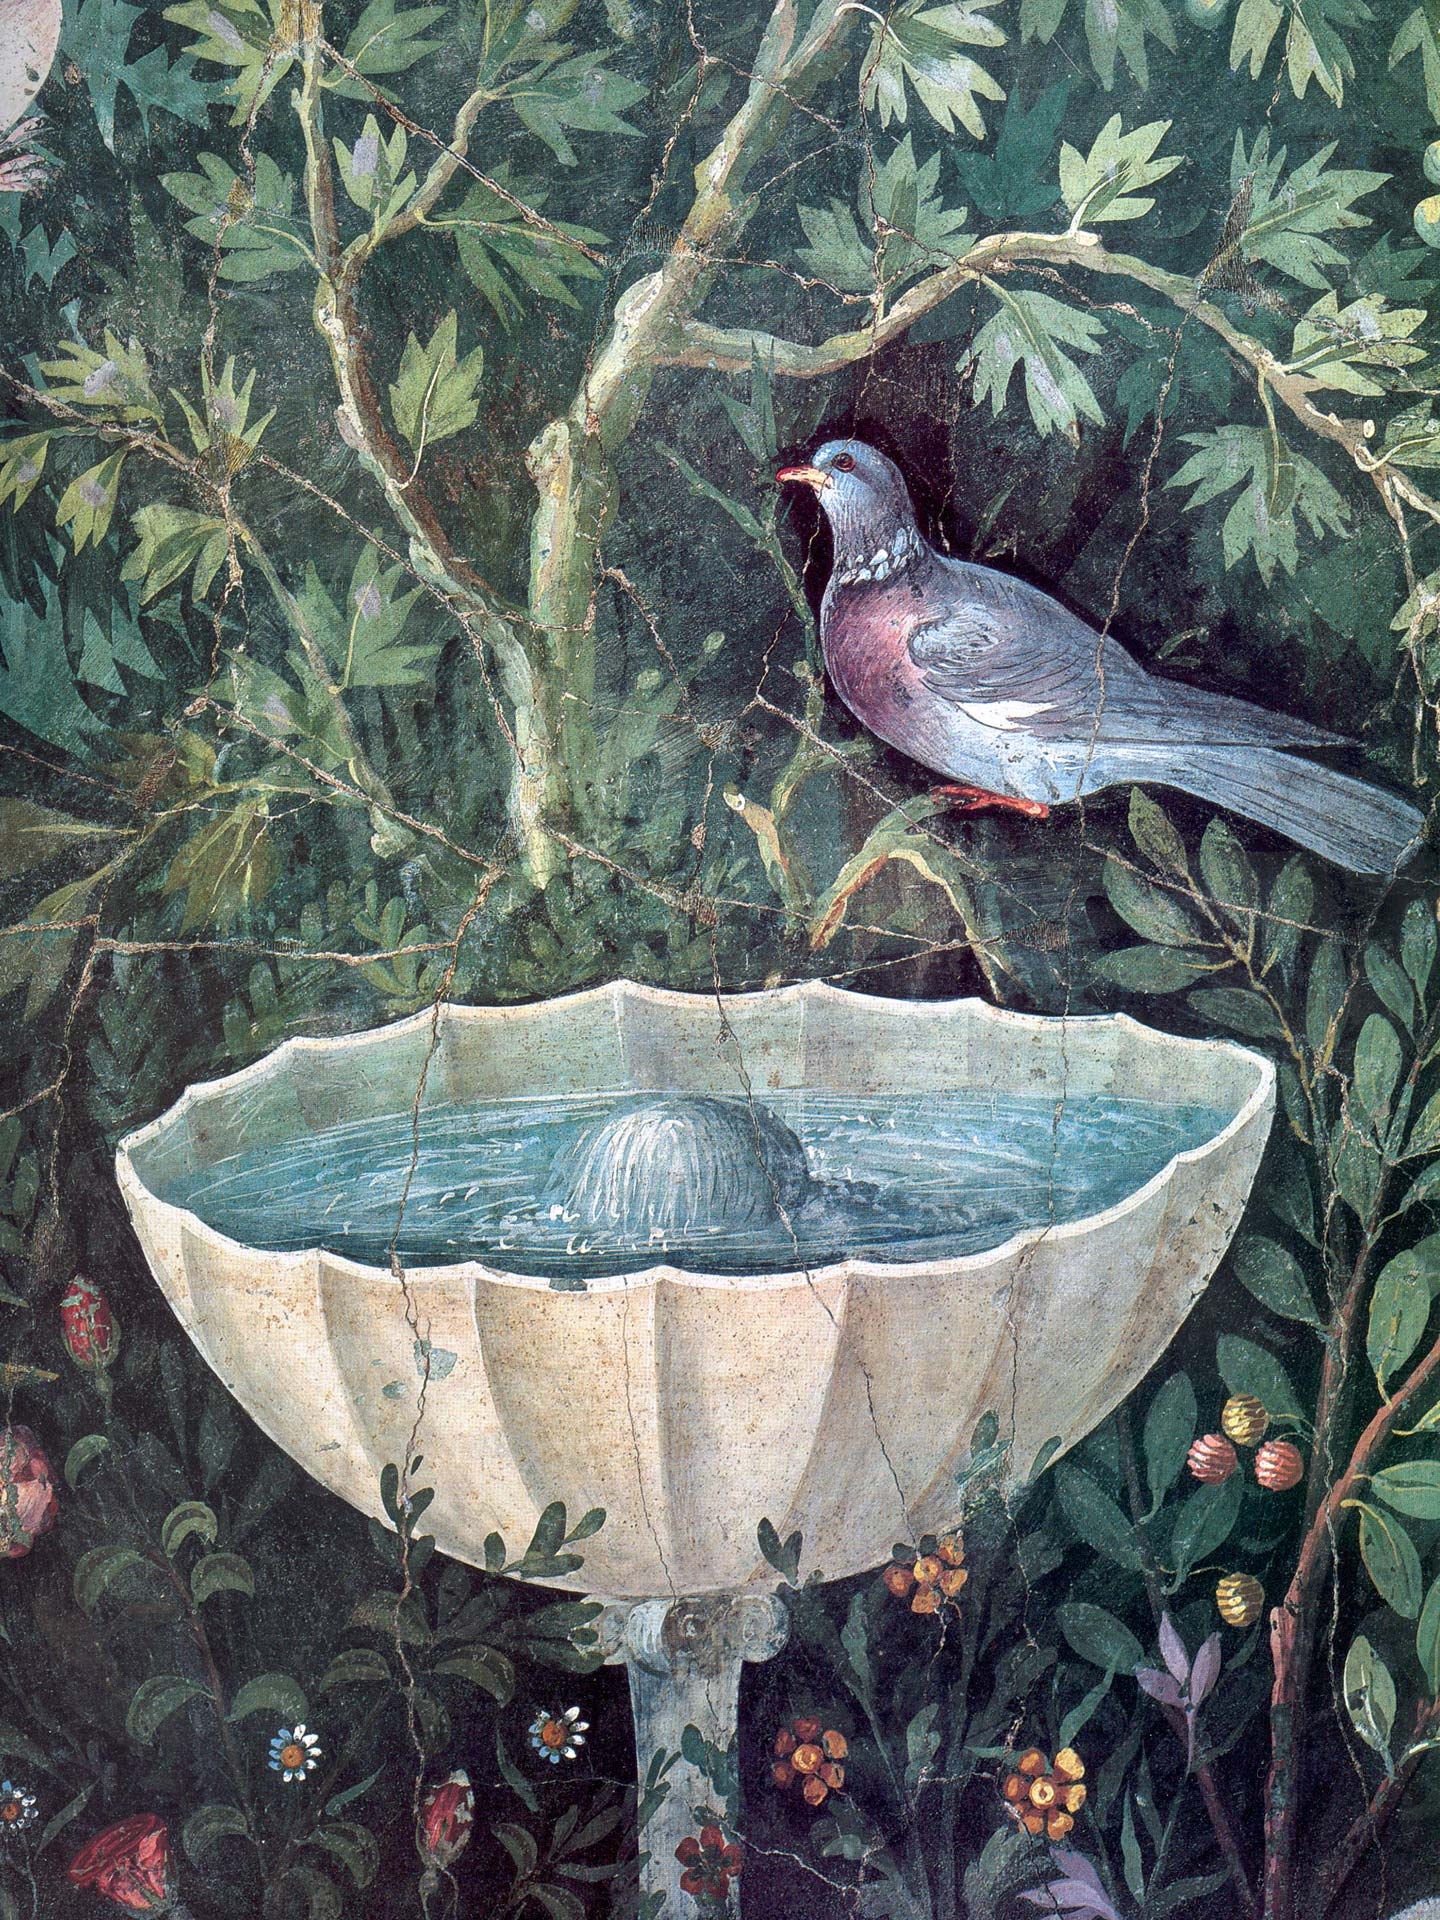 Fountain and bird from fresco of the triclinium of the House of the Golden Bracelet, Pompeii, Italy